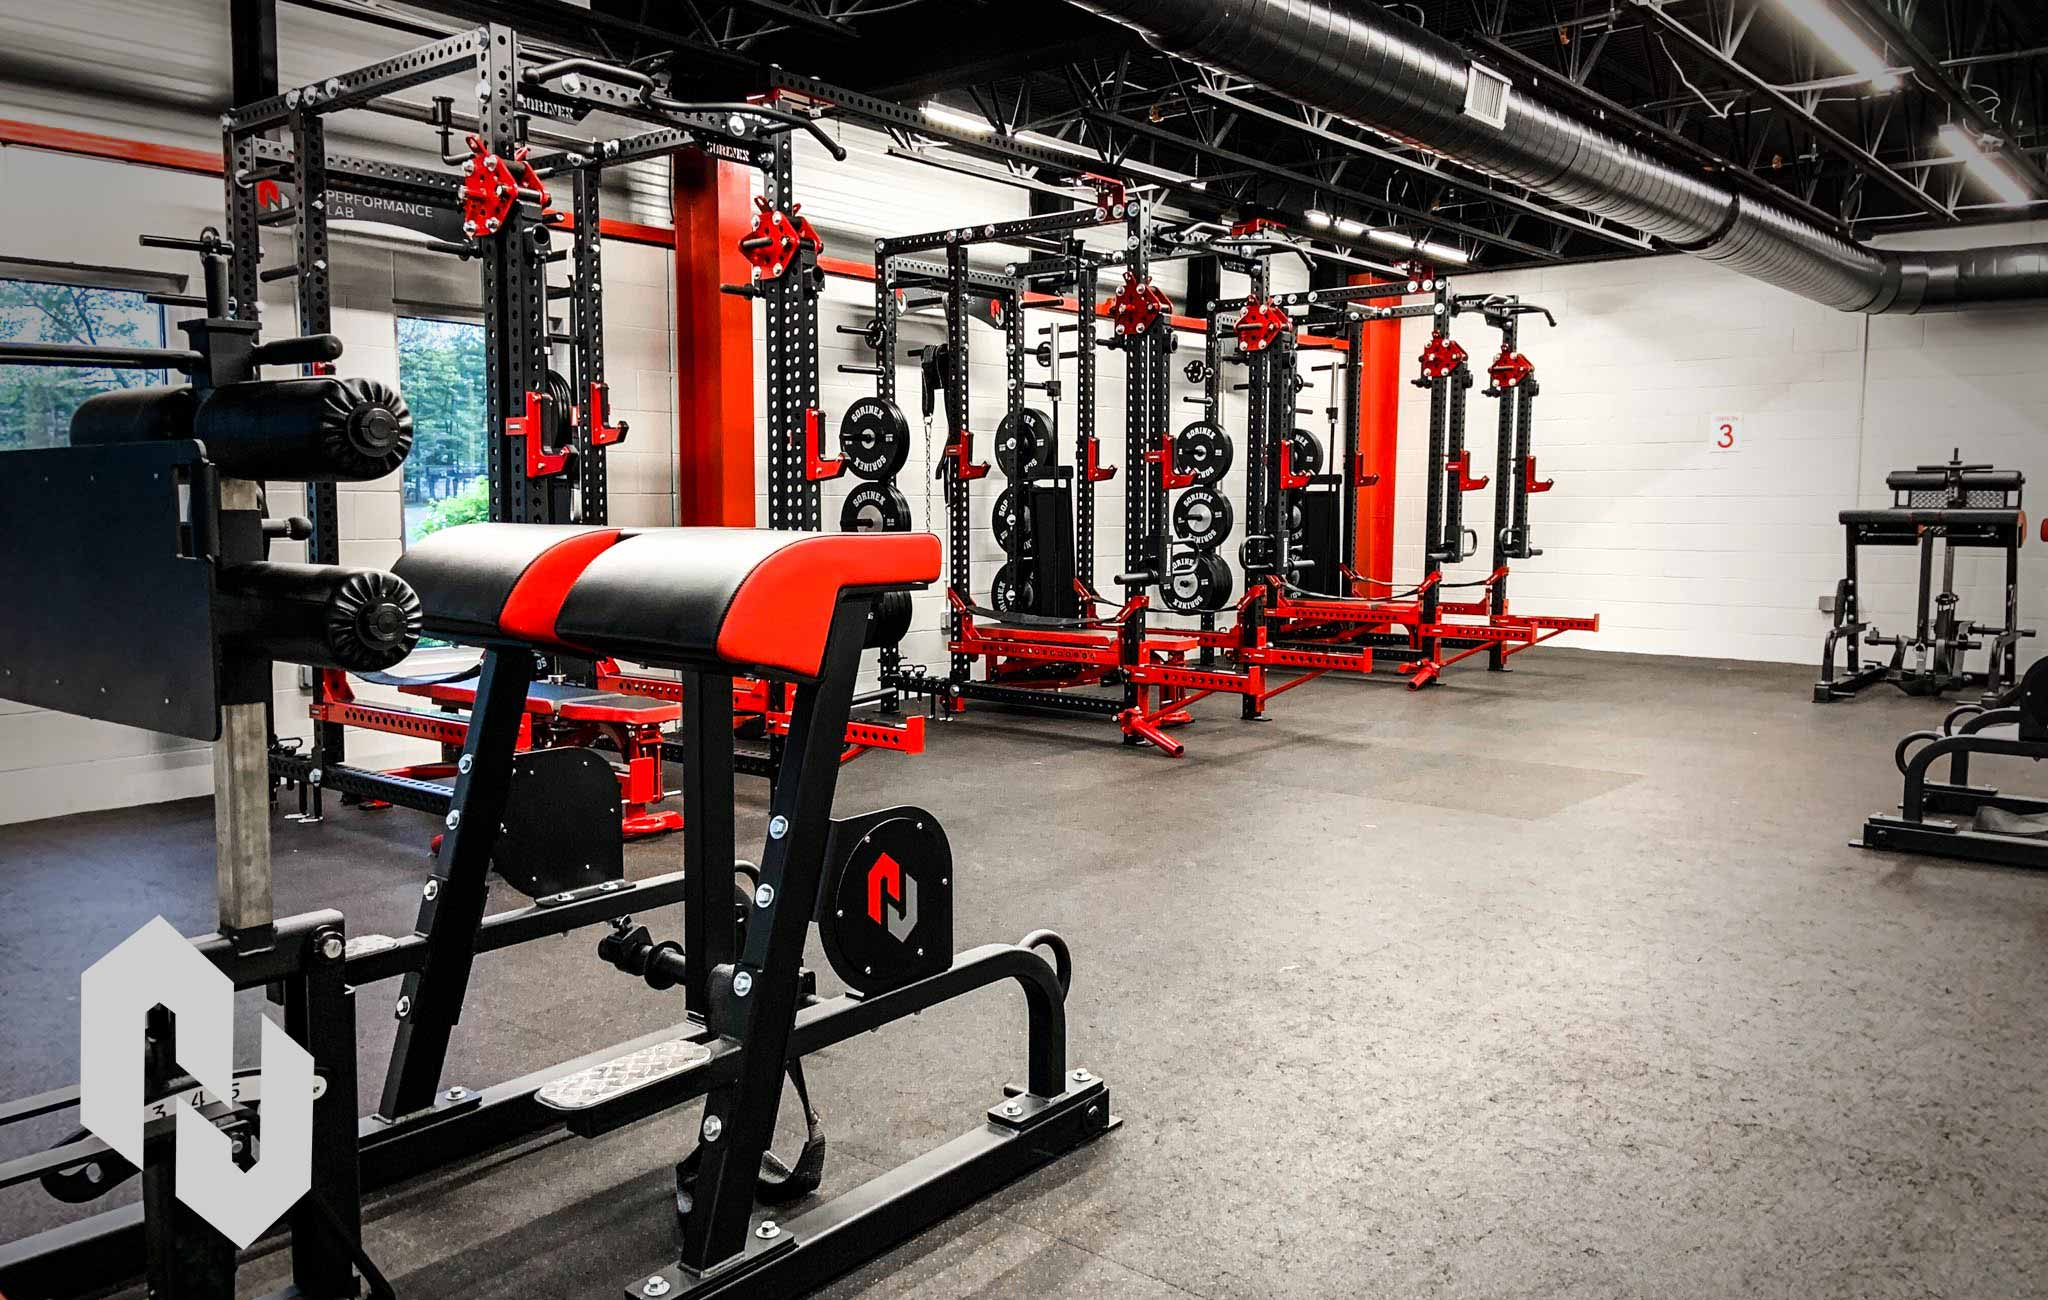 NJ Sports Performance Private Training facility Sorinex